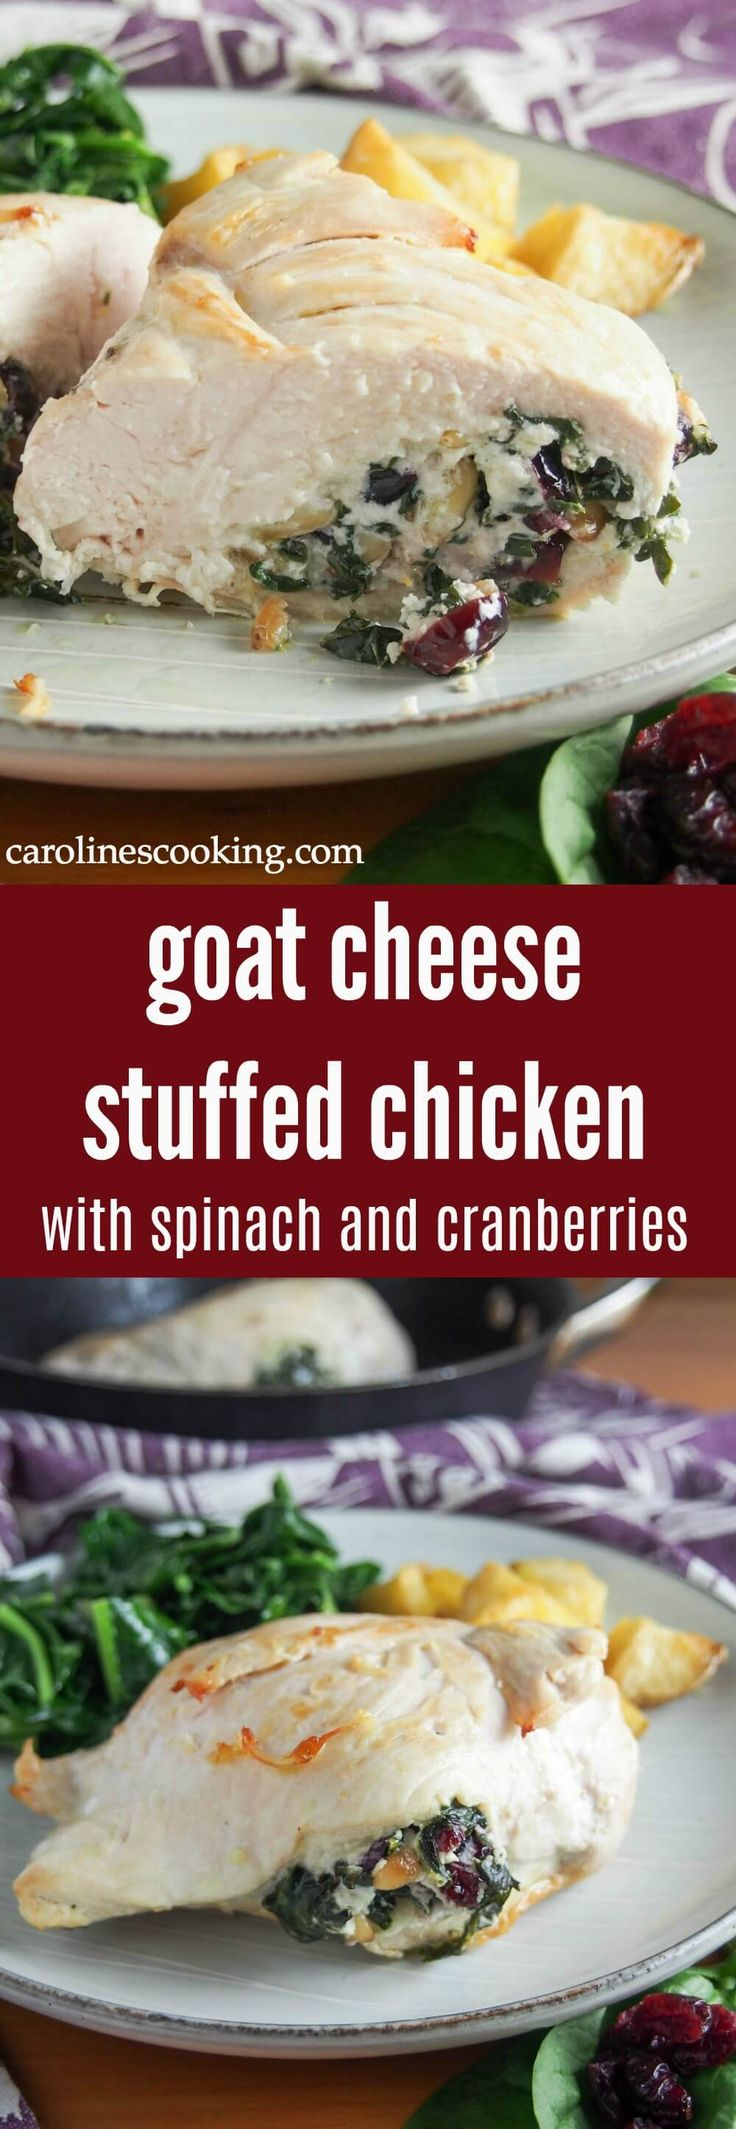 This goat cheese stuffed chicken with spinach and cranberries is deliciously comforting without being too heavy. It's fancy enough for a dinner party but quick enough for any night. AD #chicken #stuffedchicken #comfortfood